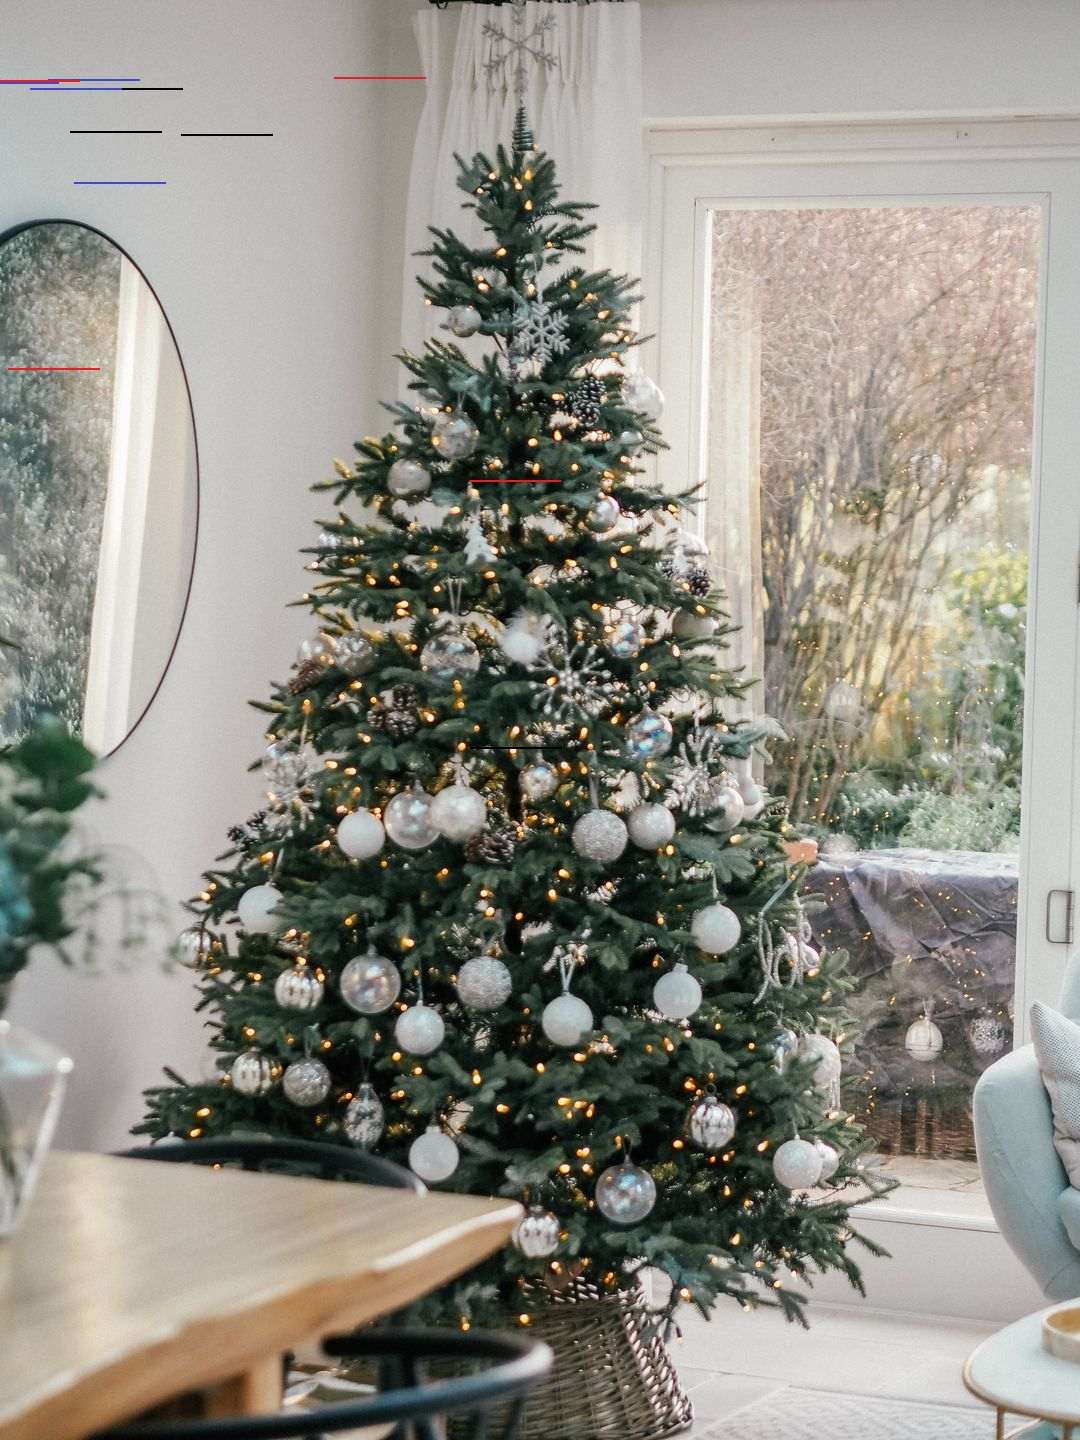 49 Perfect Christmas Tree Ideas Christmas Is Fast Approaching And Seems To Get White Christmas Trees Christmas Tree Decorations Diy Christmas Tree Decorations